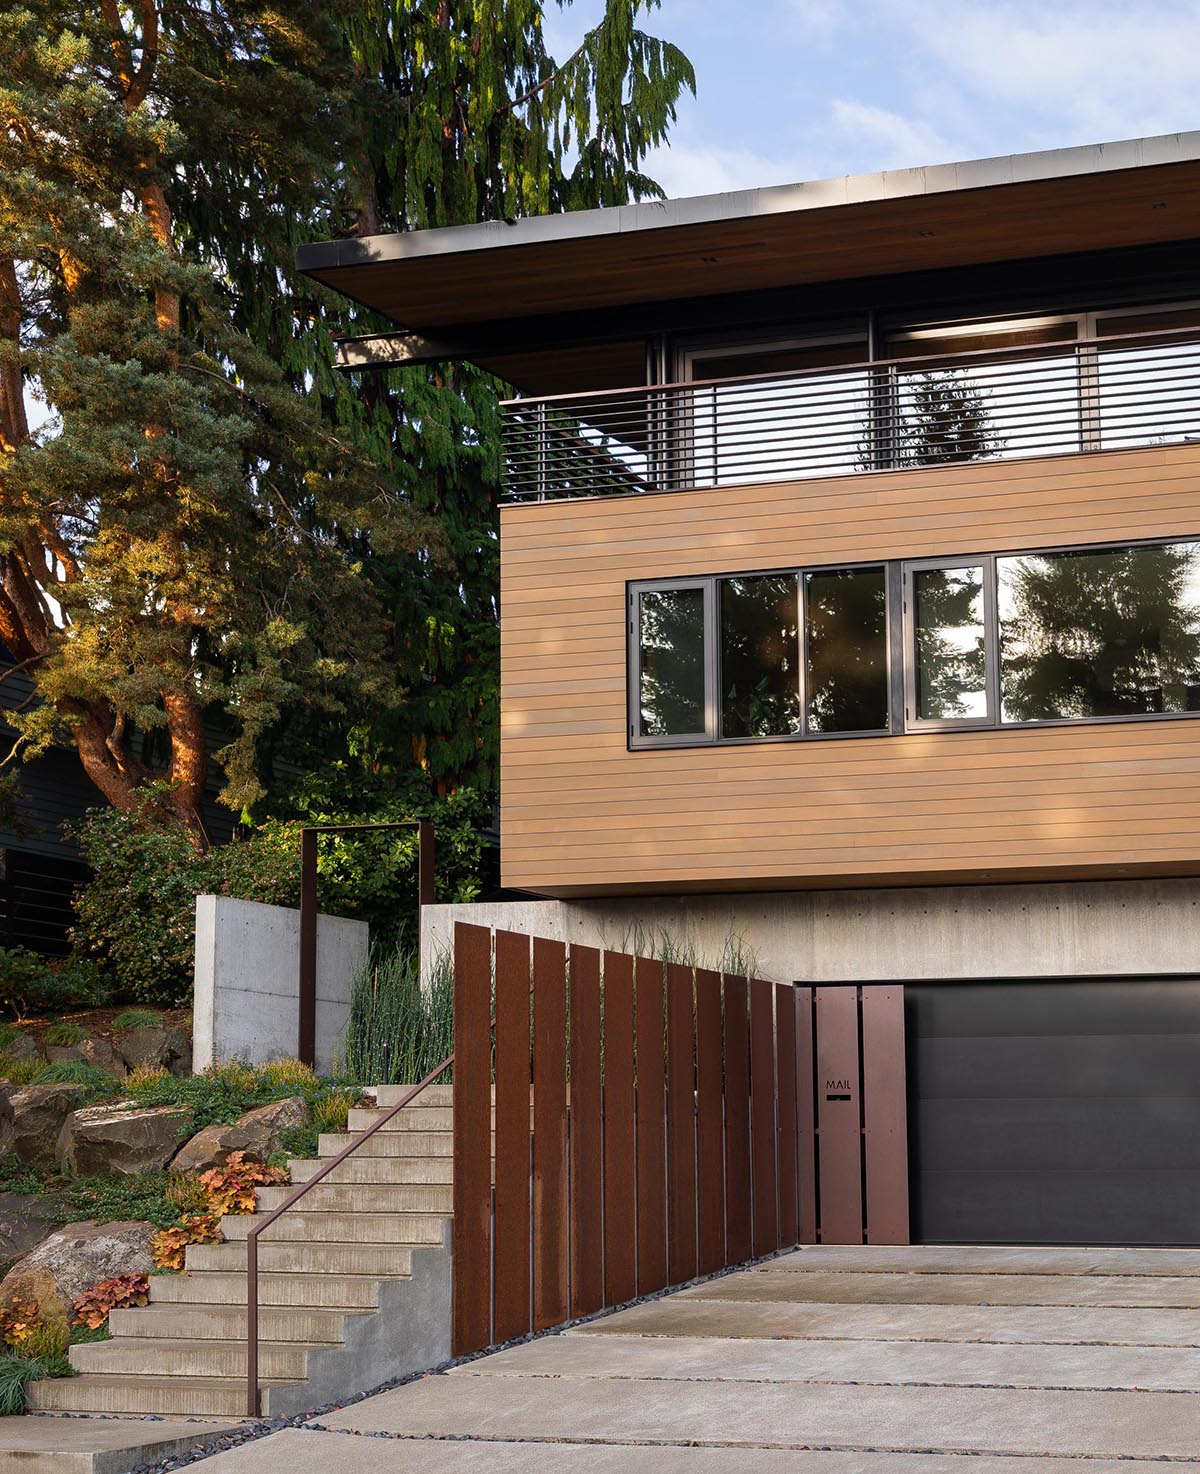 The facade of this modern house features a concrete, a black garage door, steel accents, wood siding, and steps that lead to the front door.